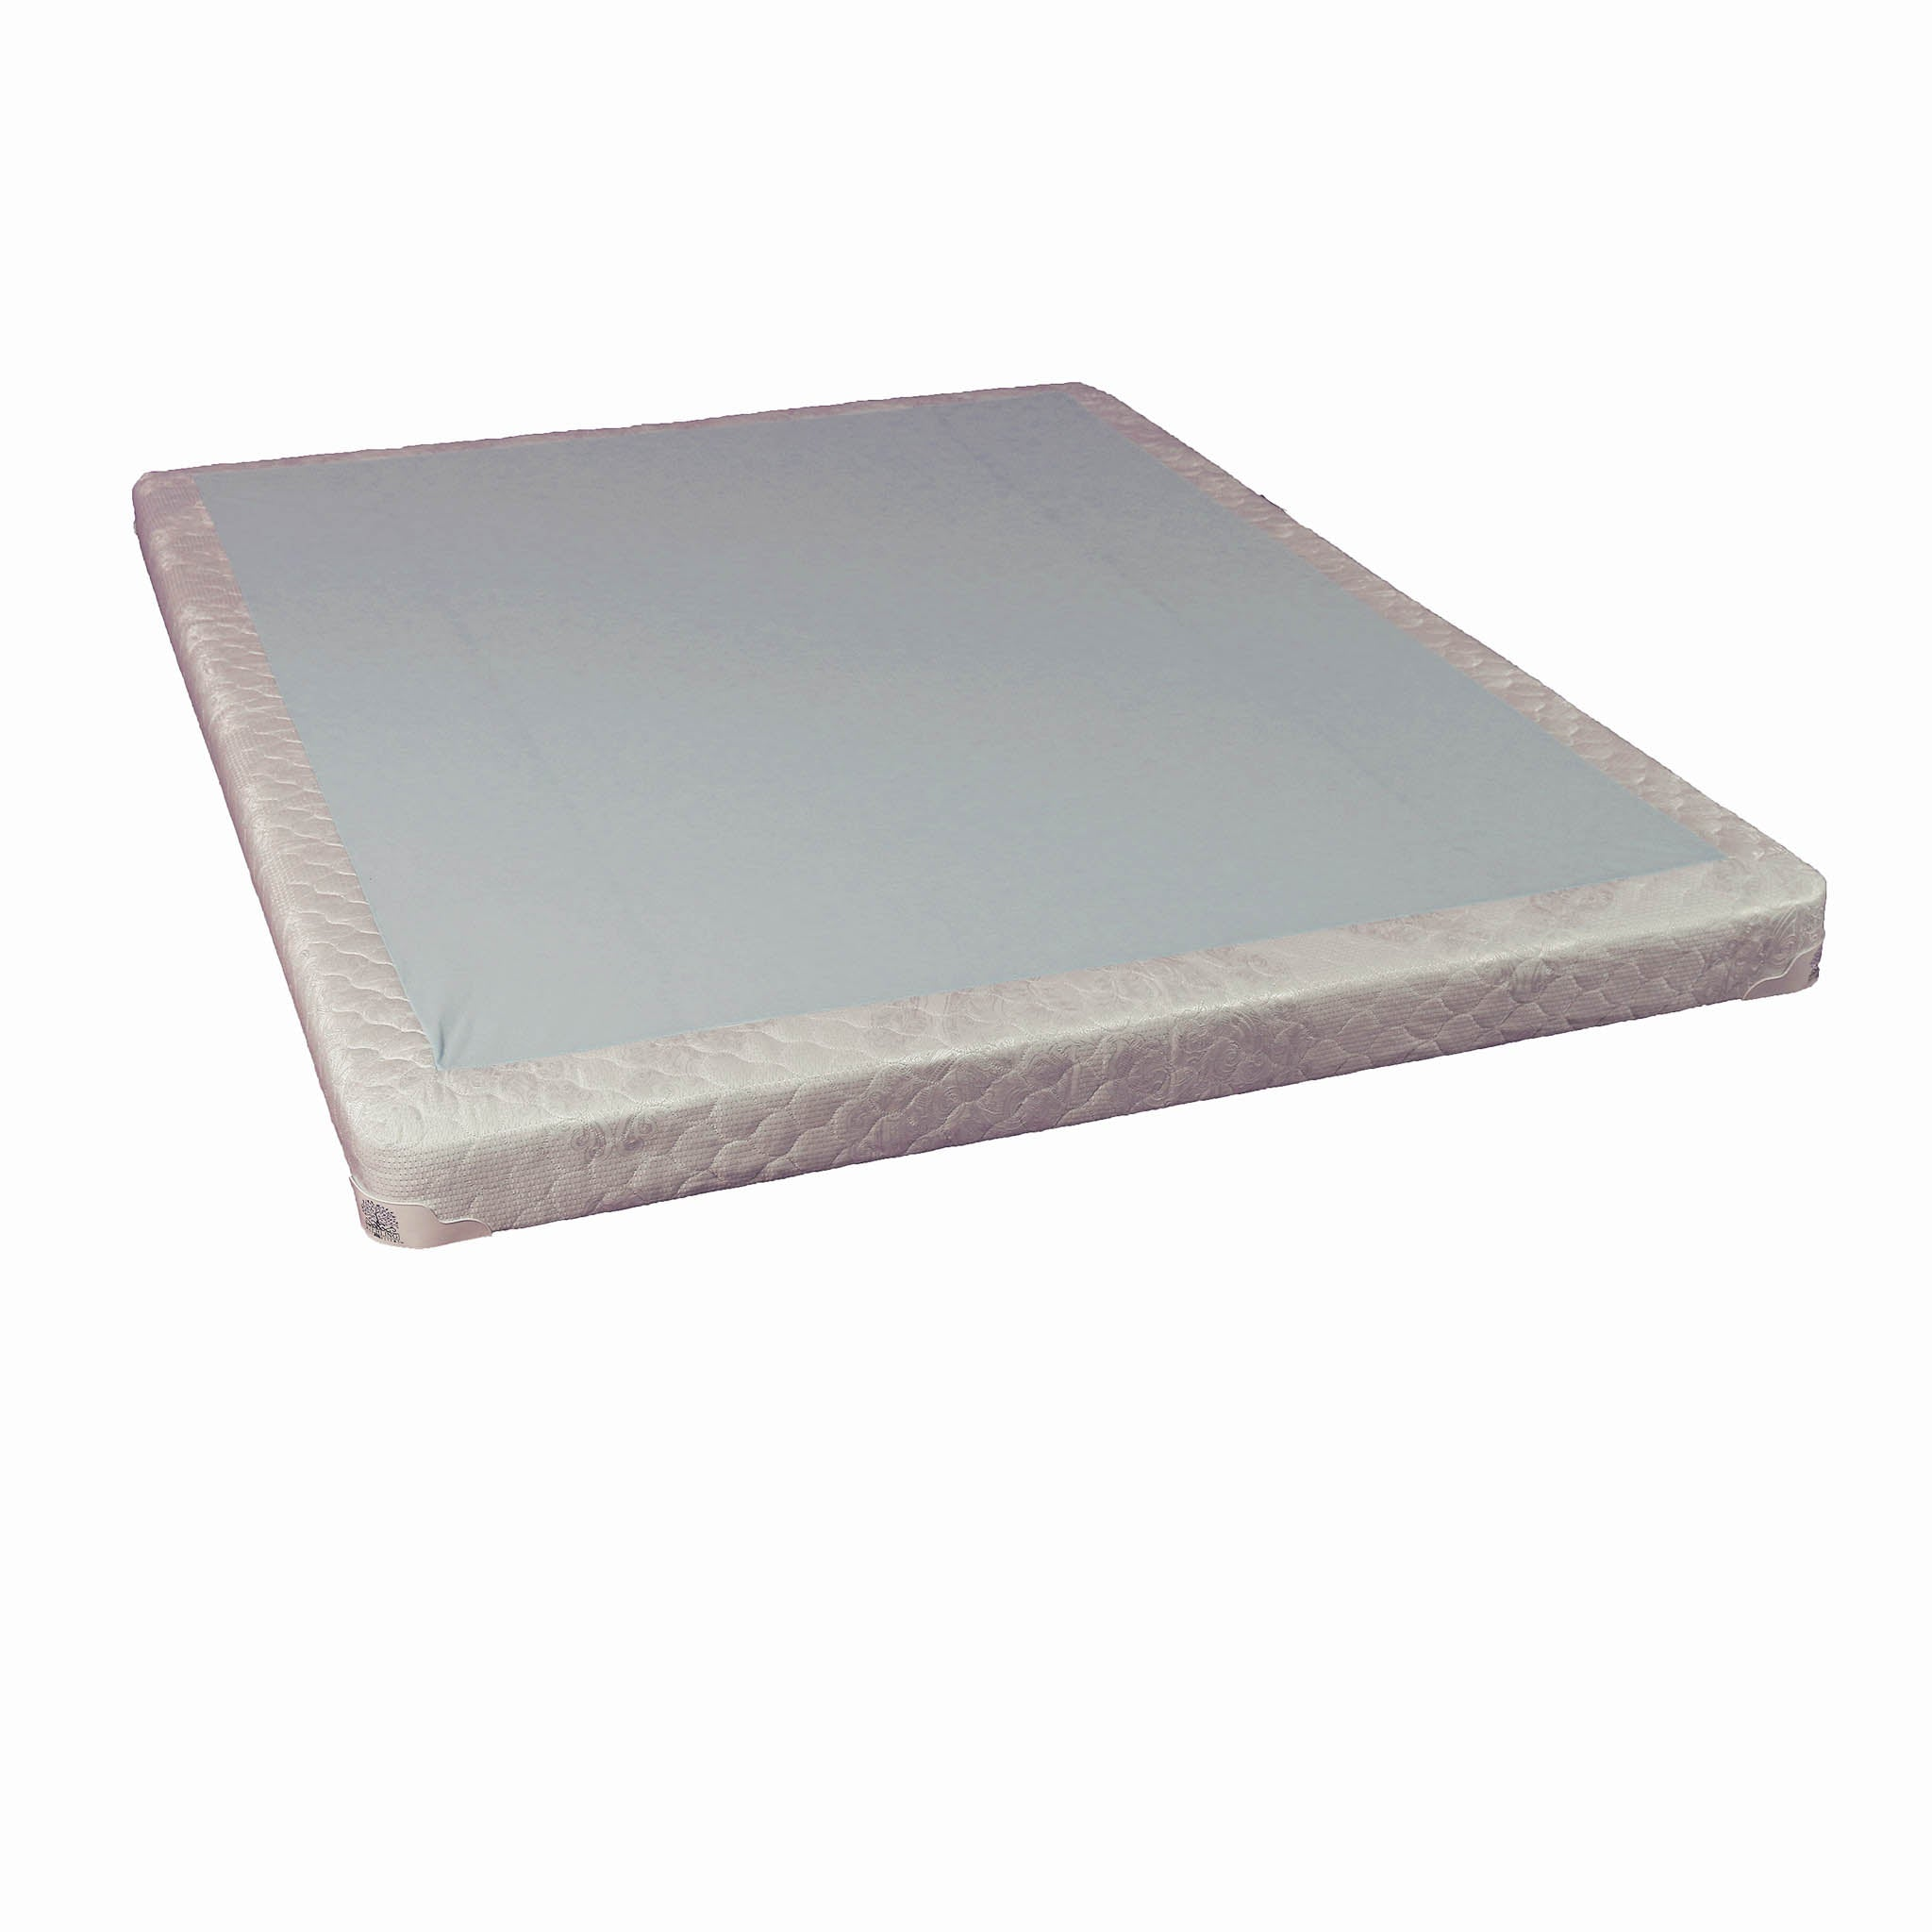 "4"" Foundations: Hospitality Innerspring Mattress - Sterling Sleep Systems"